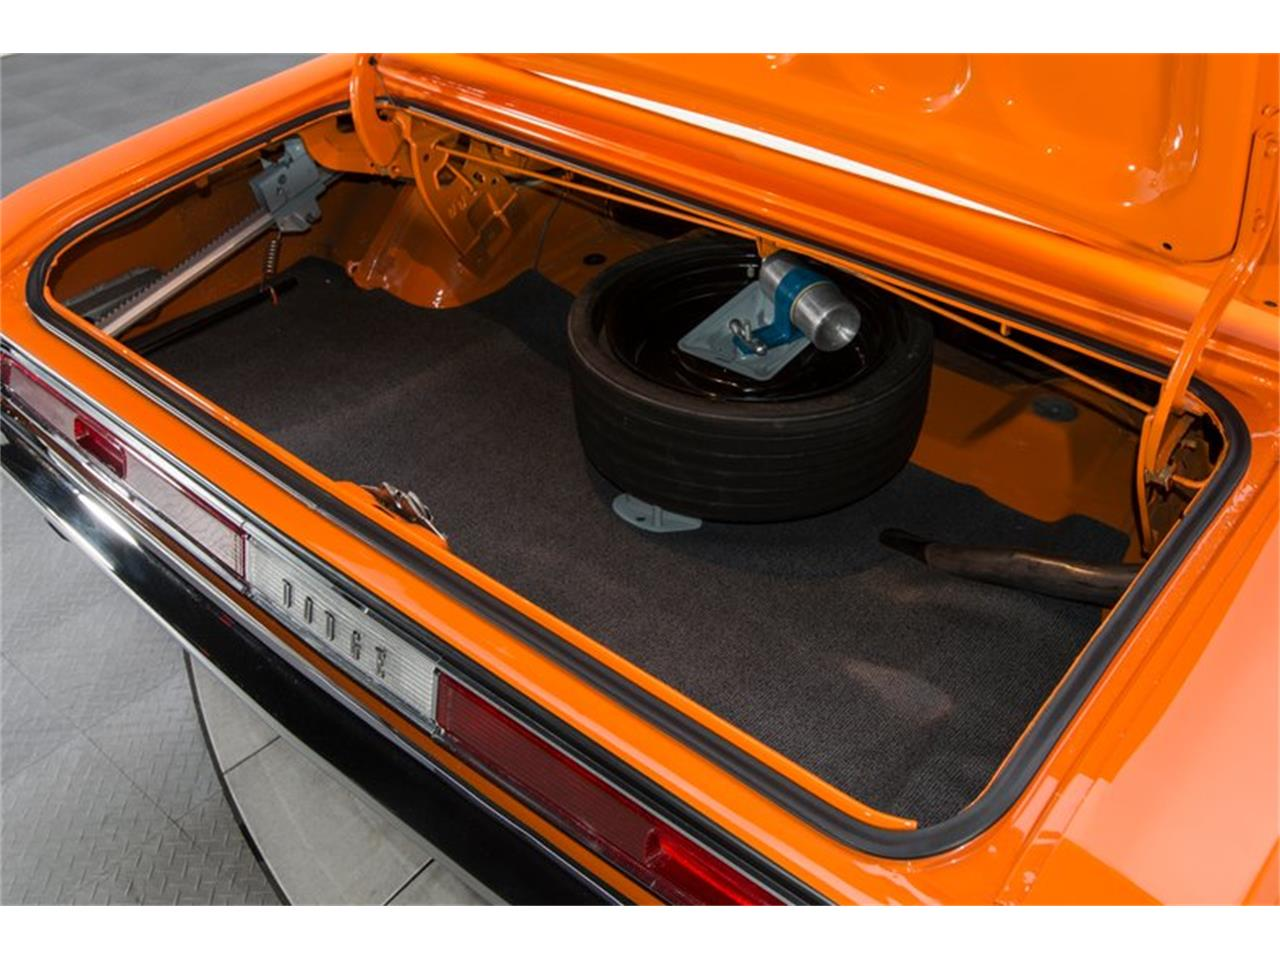 1970 Dodge Challenger R/T for sale in Charlotte, NC – photo 45